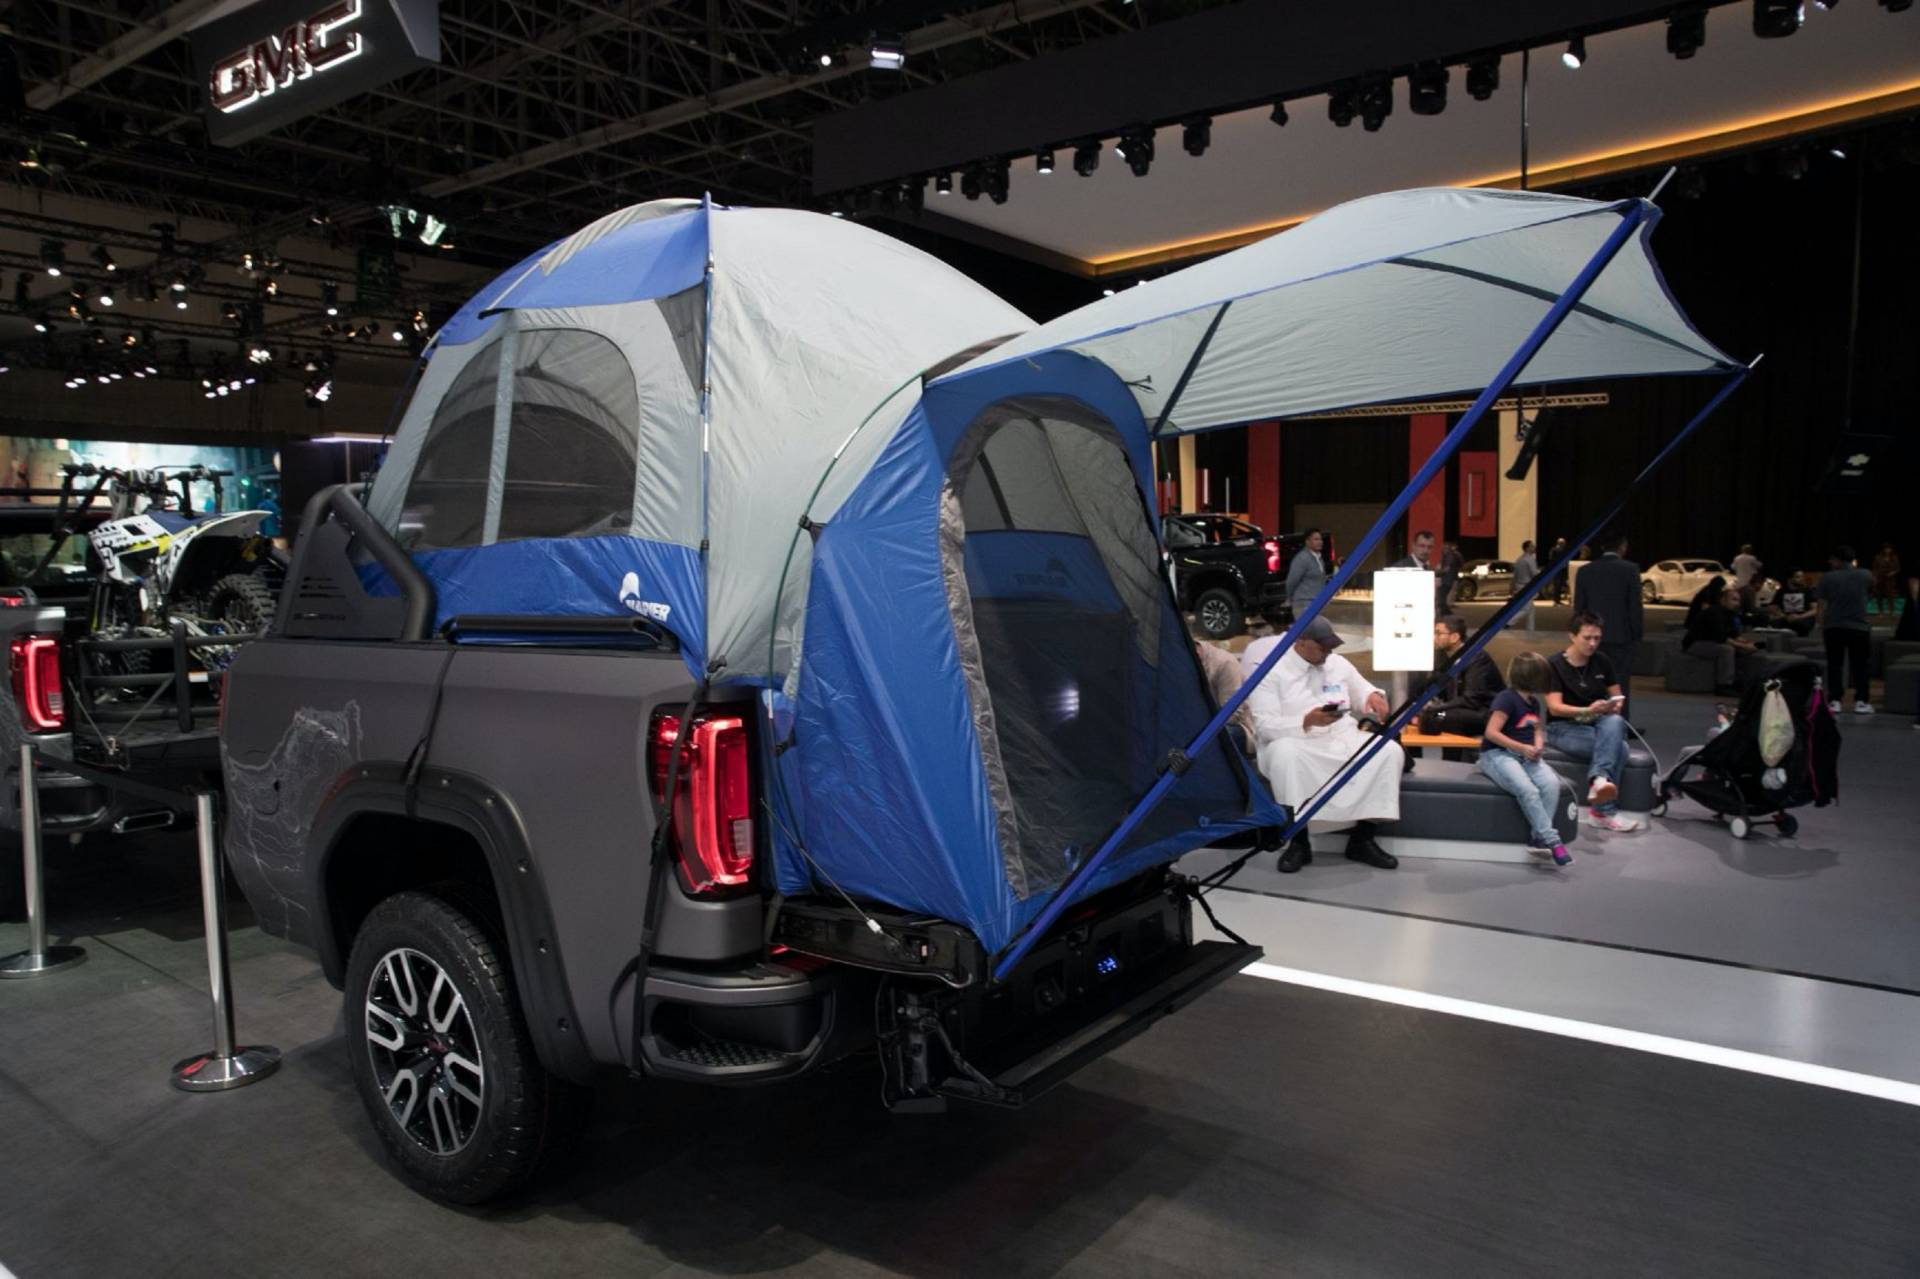 Gmc Debuts Sierra And Yukon Accessory Concepts In Dubai Carscoops